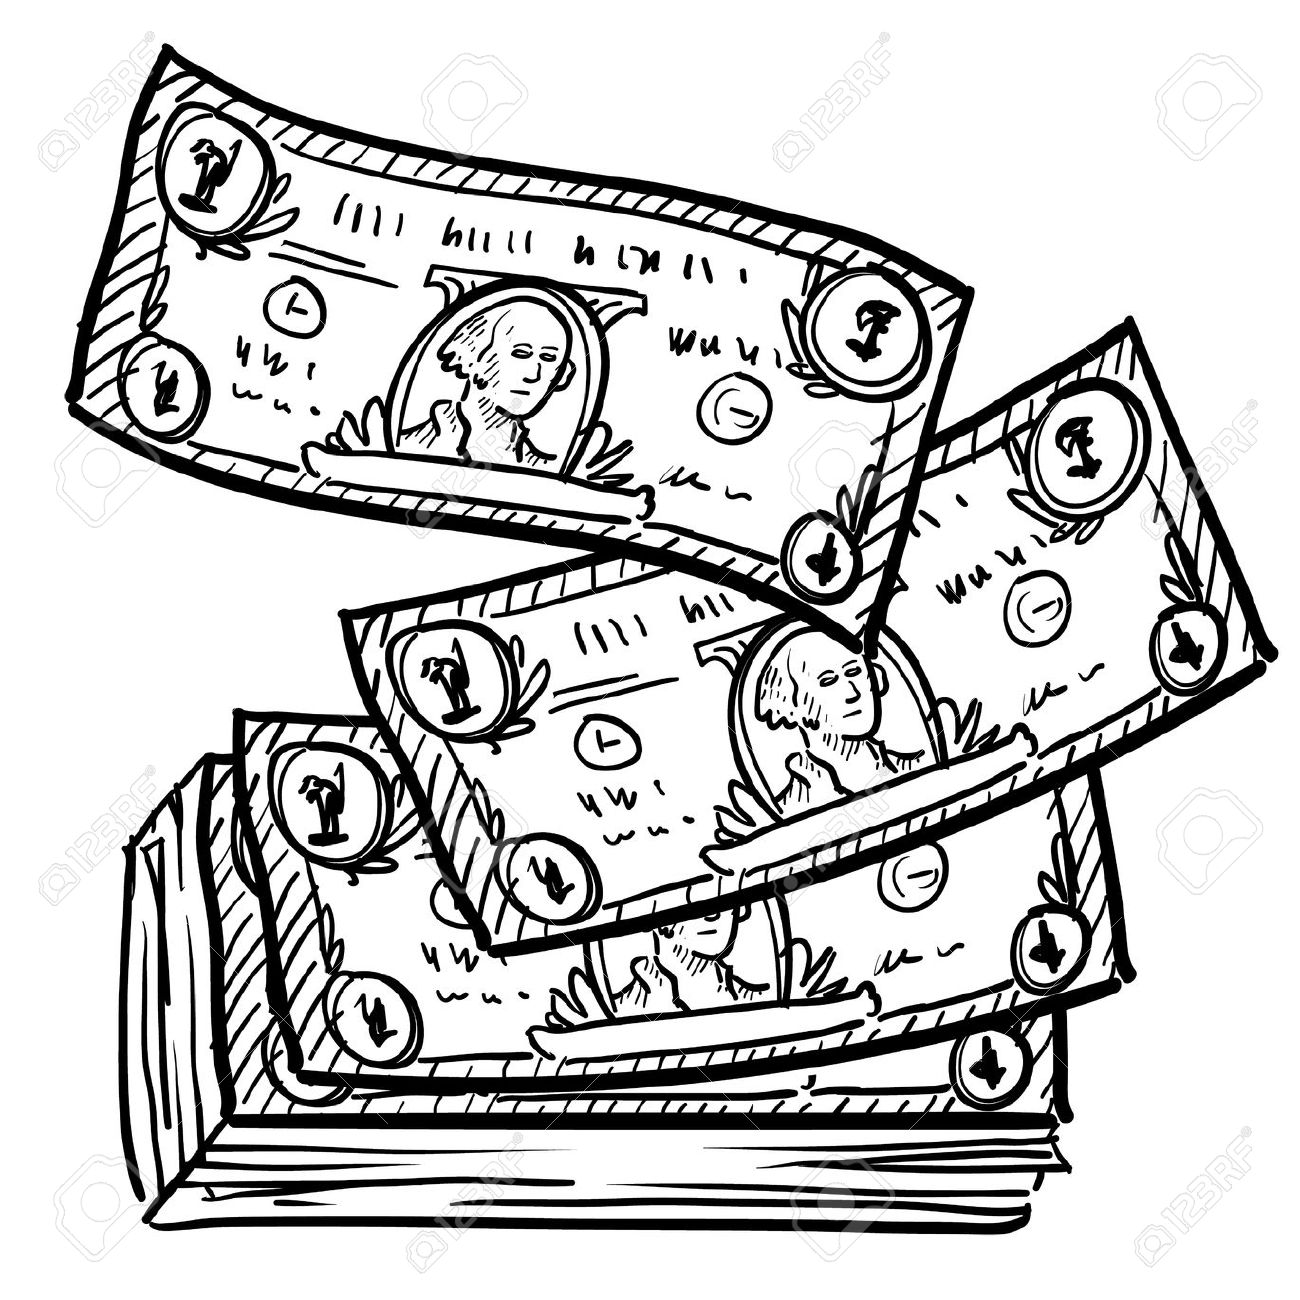 Cash clipart money bill  Money White And Free